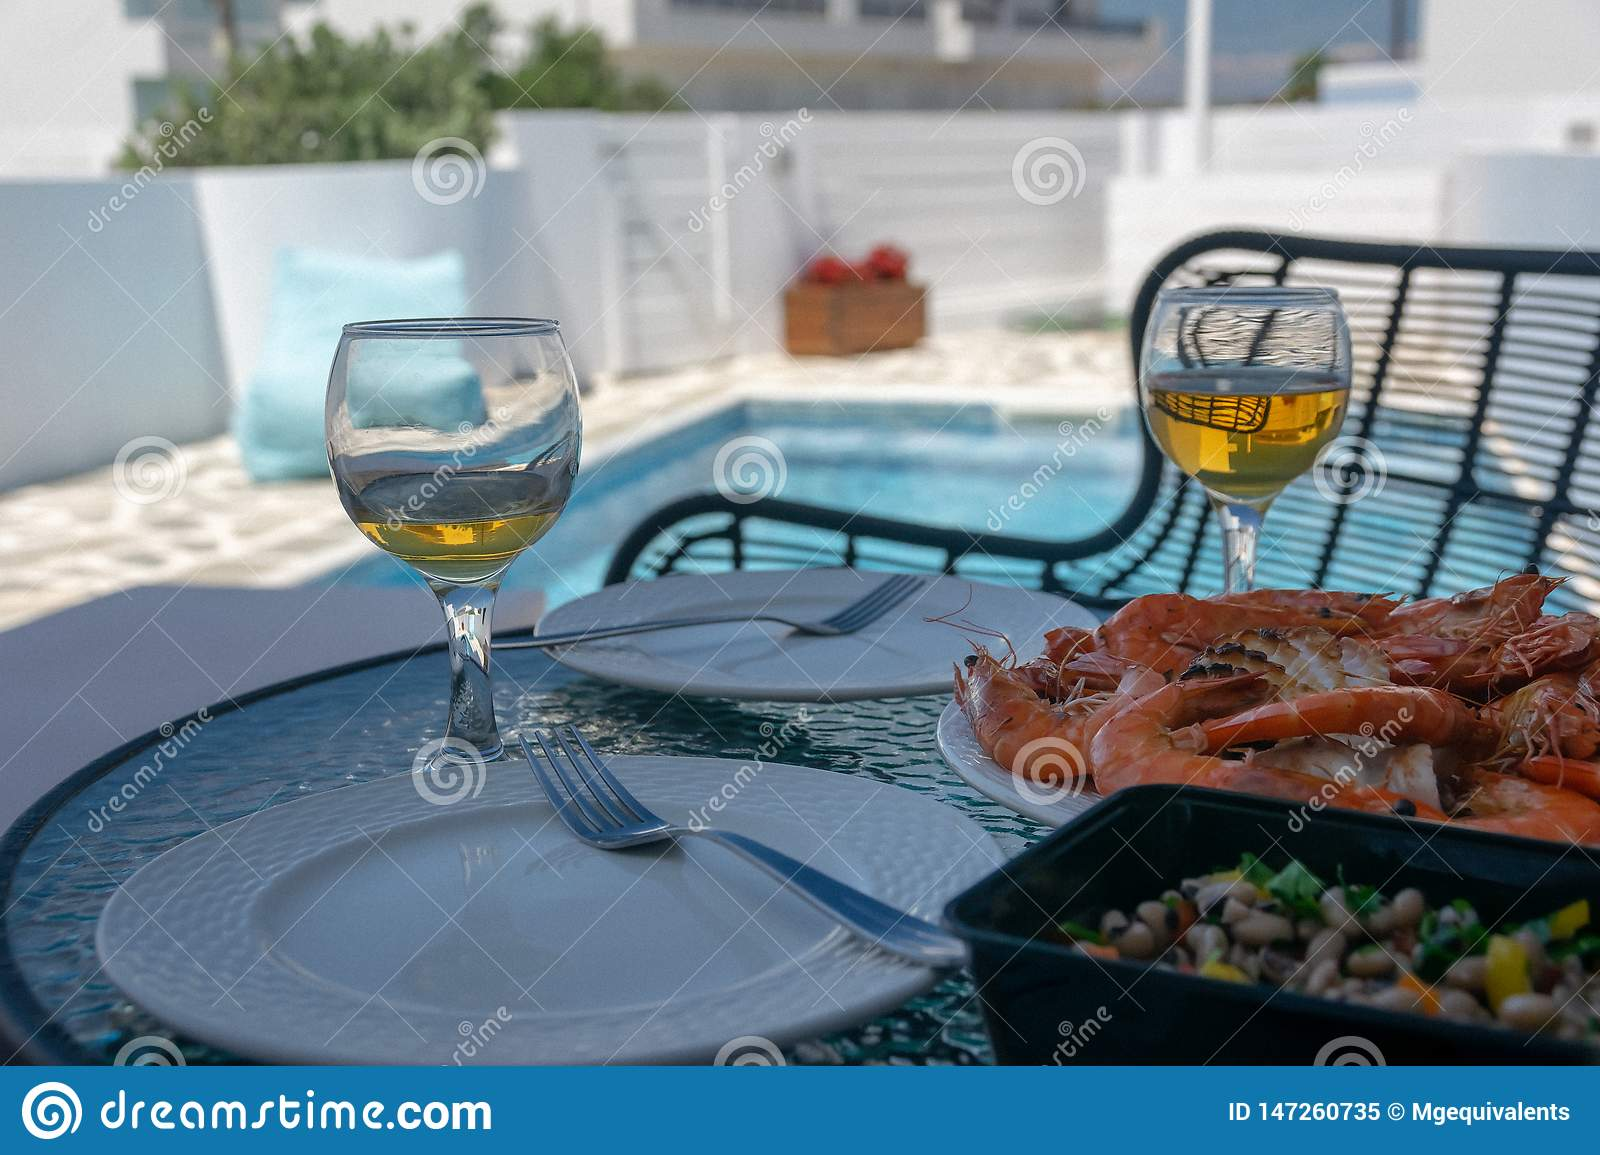 Two glasses of white wine and shrimps on the table by the pool